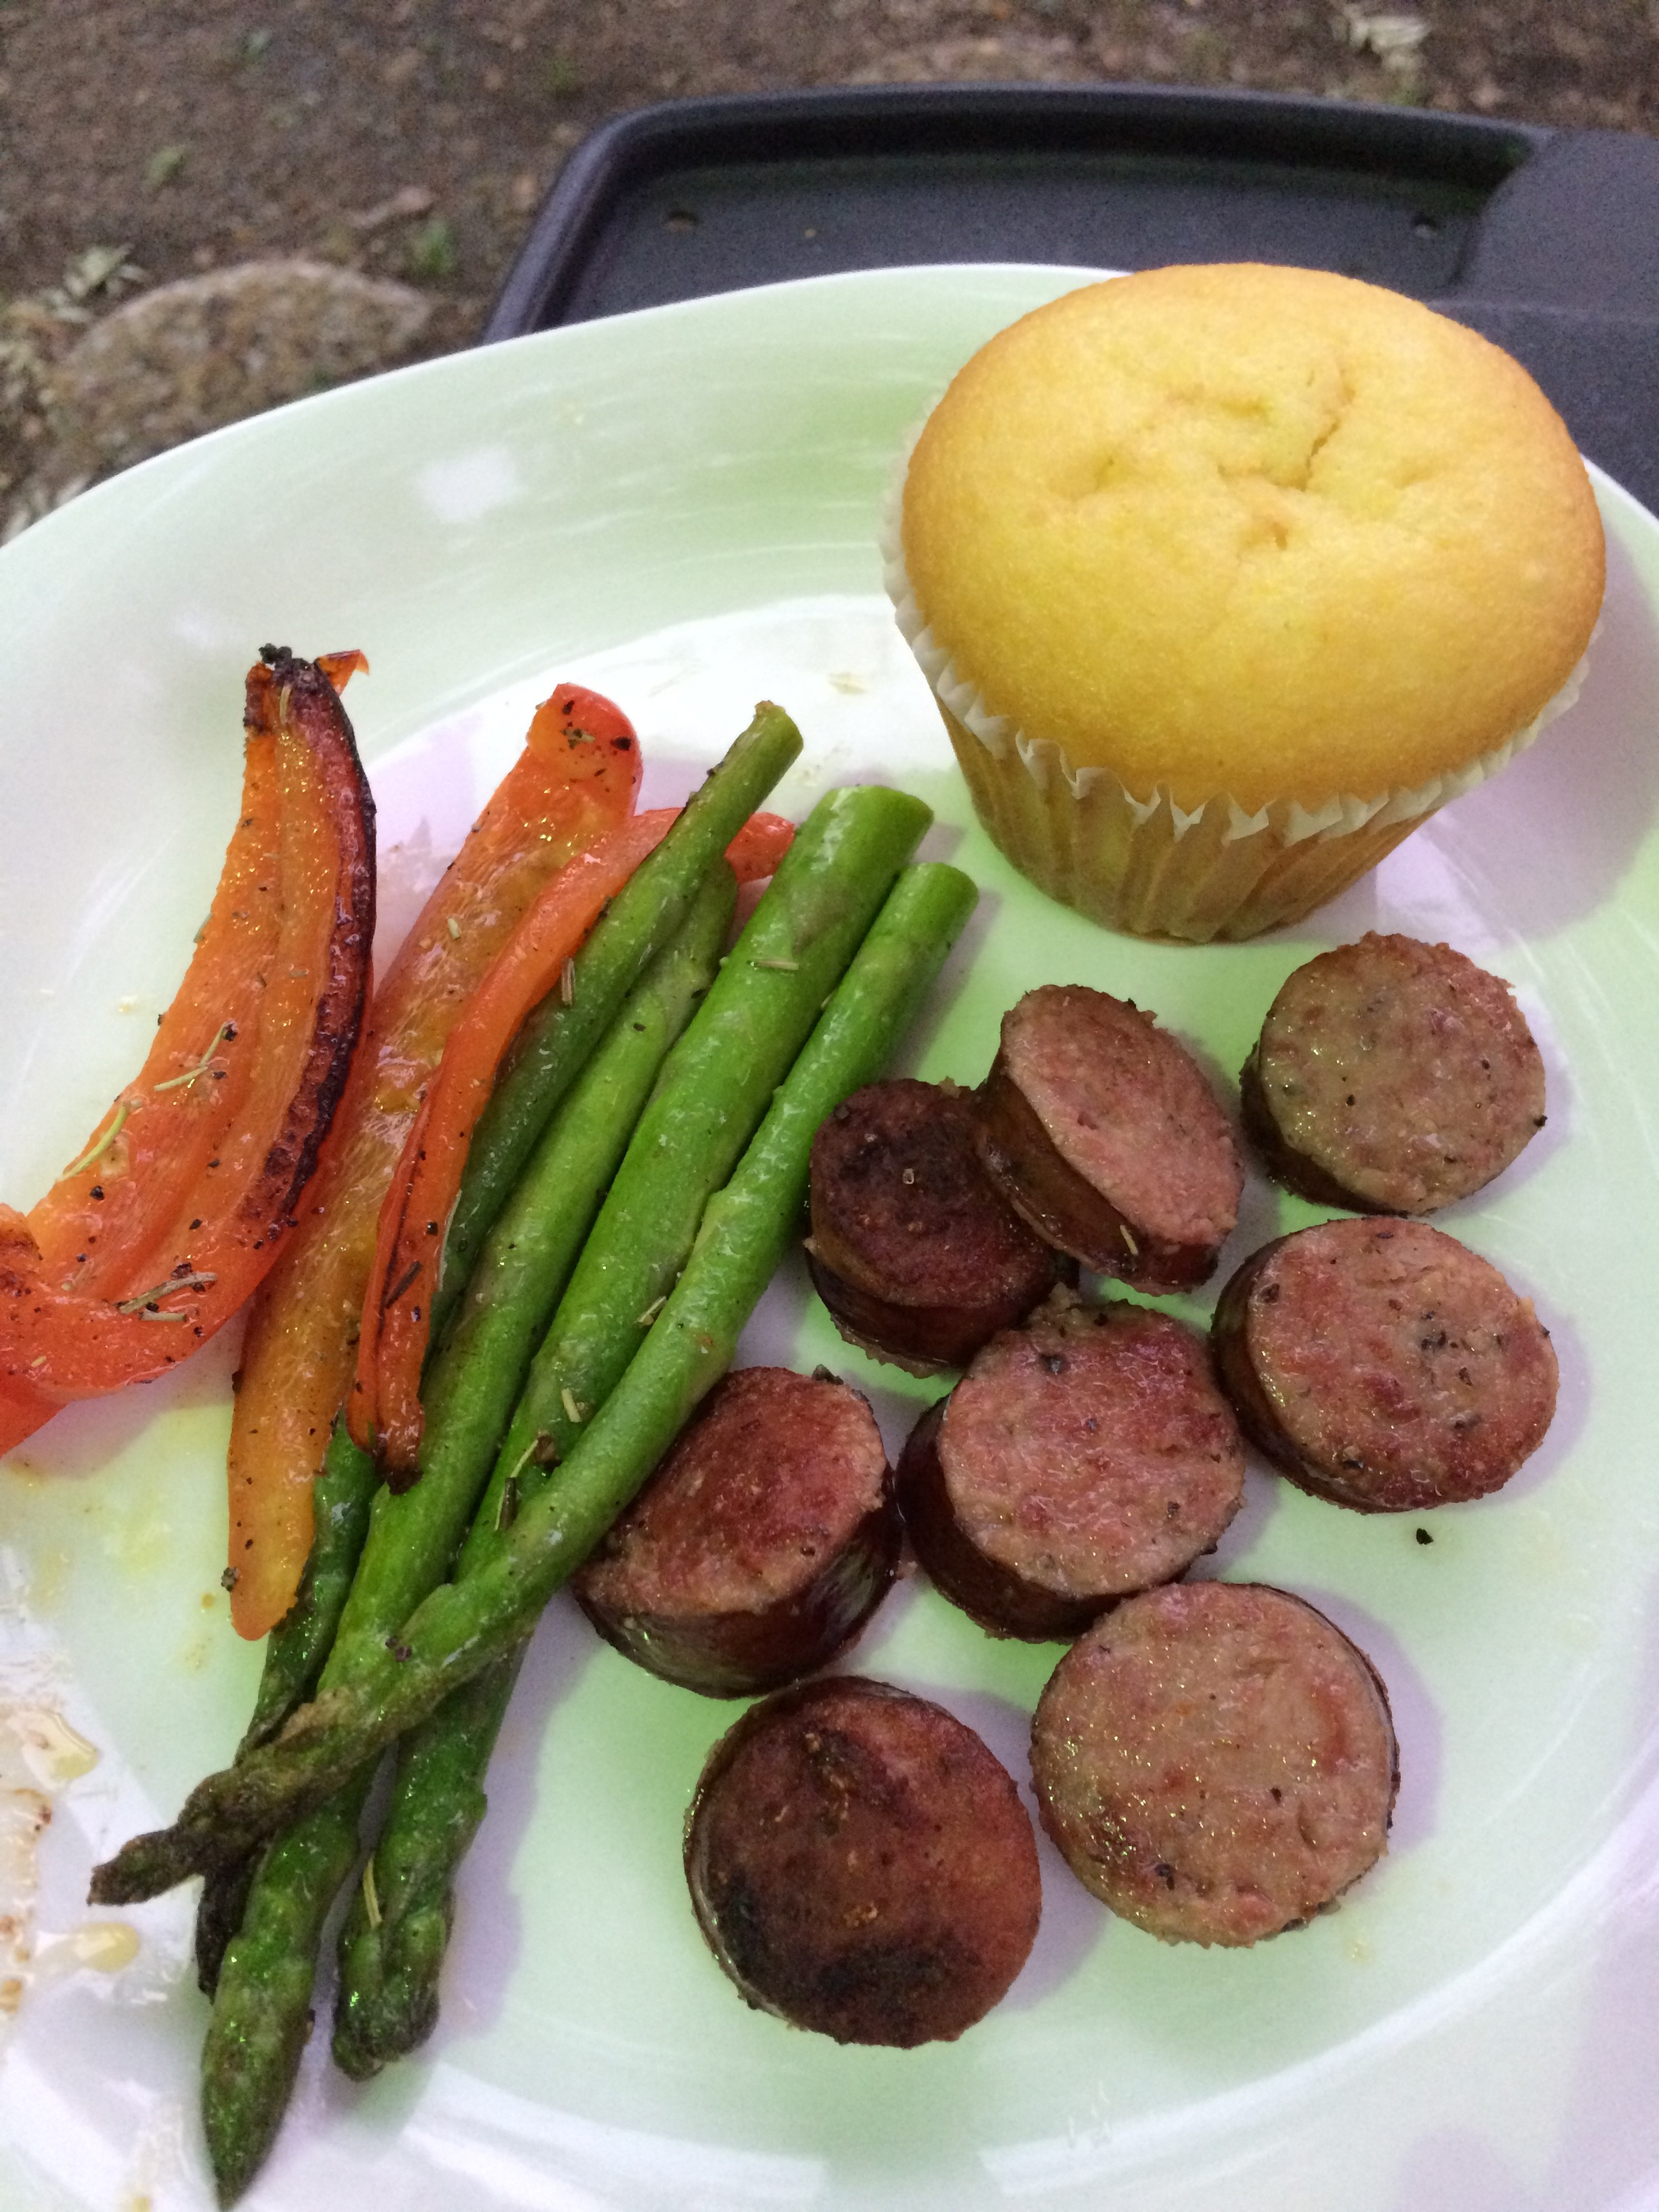 Sausage and Veggies on Grill